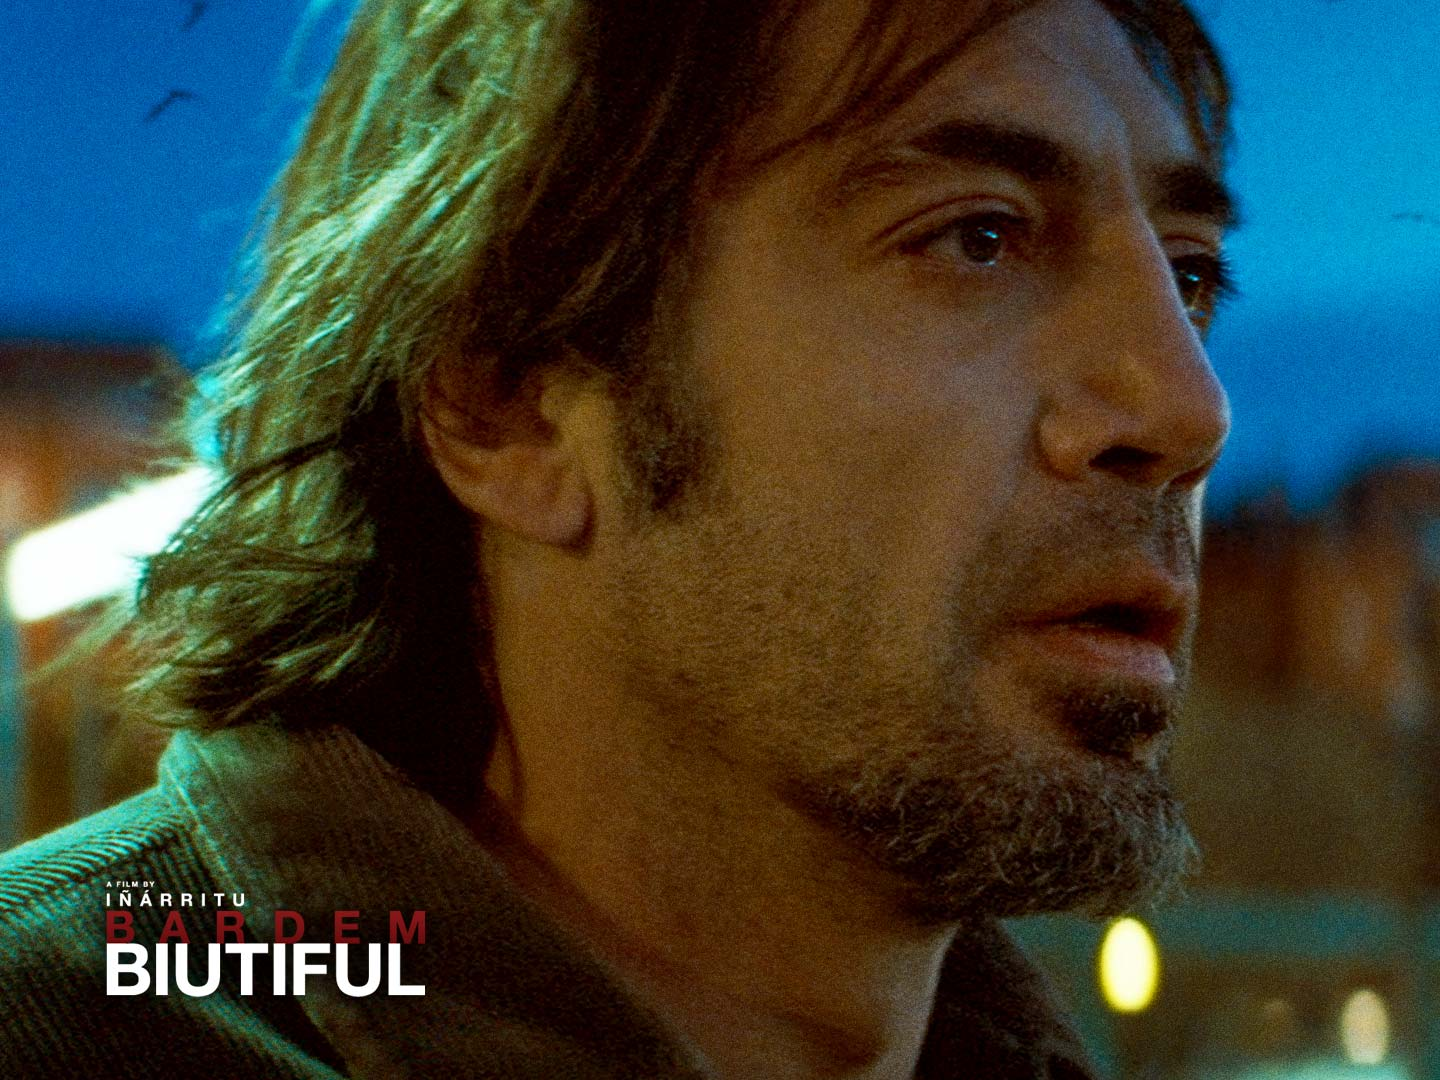 Biutiful Wallpaper download - Javier Bardem a still wallpaper image for Biutiful, the new movie from director Alejandro Gonzalez Inarritu, winning the Best Actor Award at Cannes